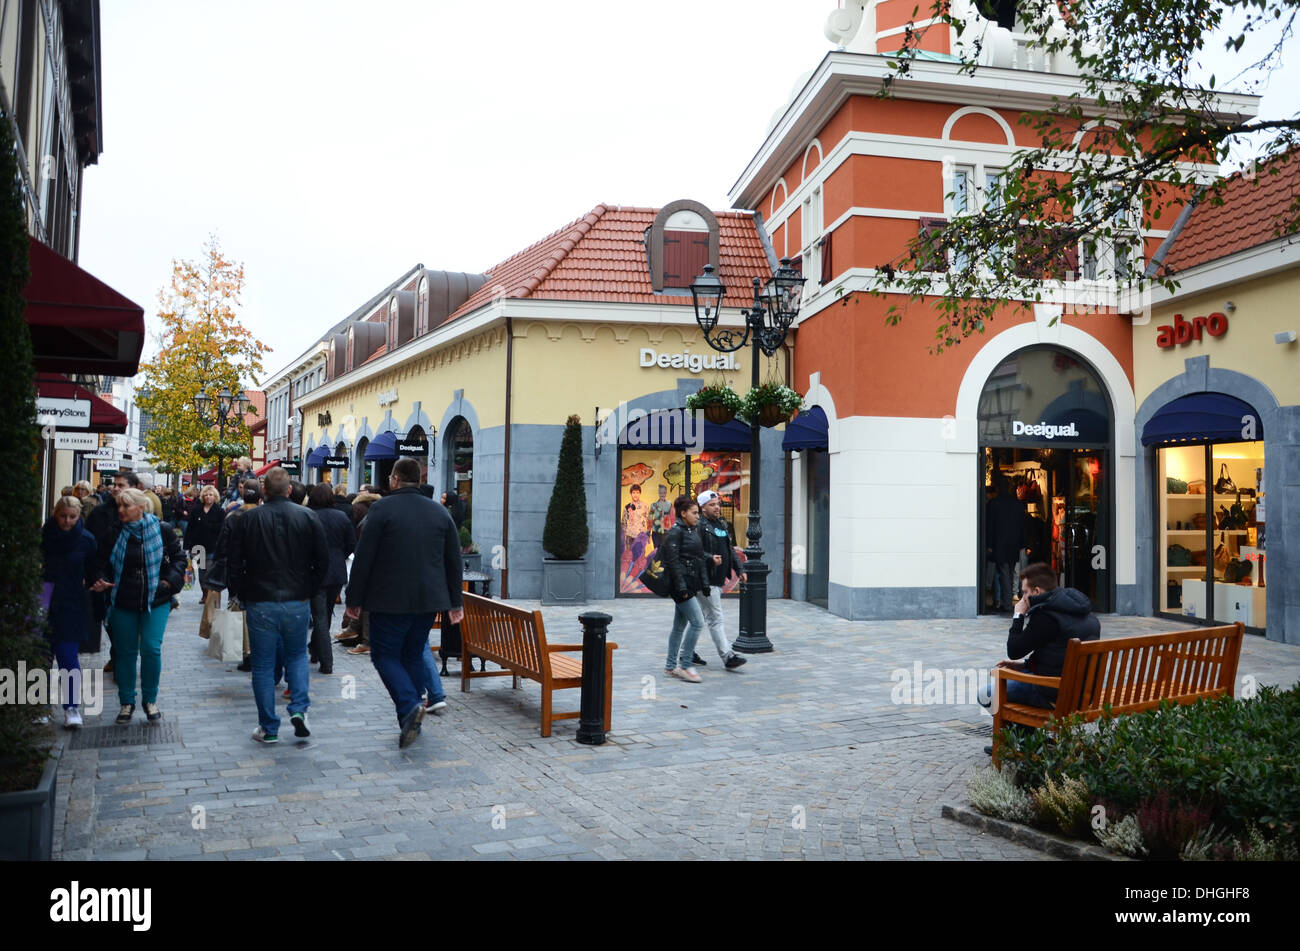 mcarthur glen designer outlet center roermond netherlands stock photo 62445244 alamy. Black Bedroom Furniture Sets. Home Design Ideas